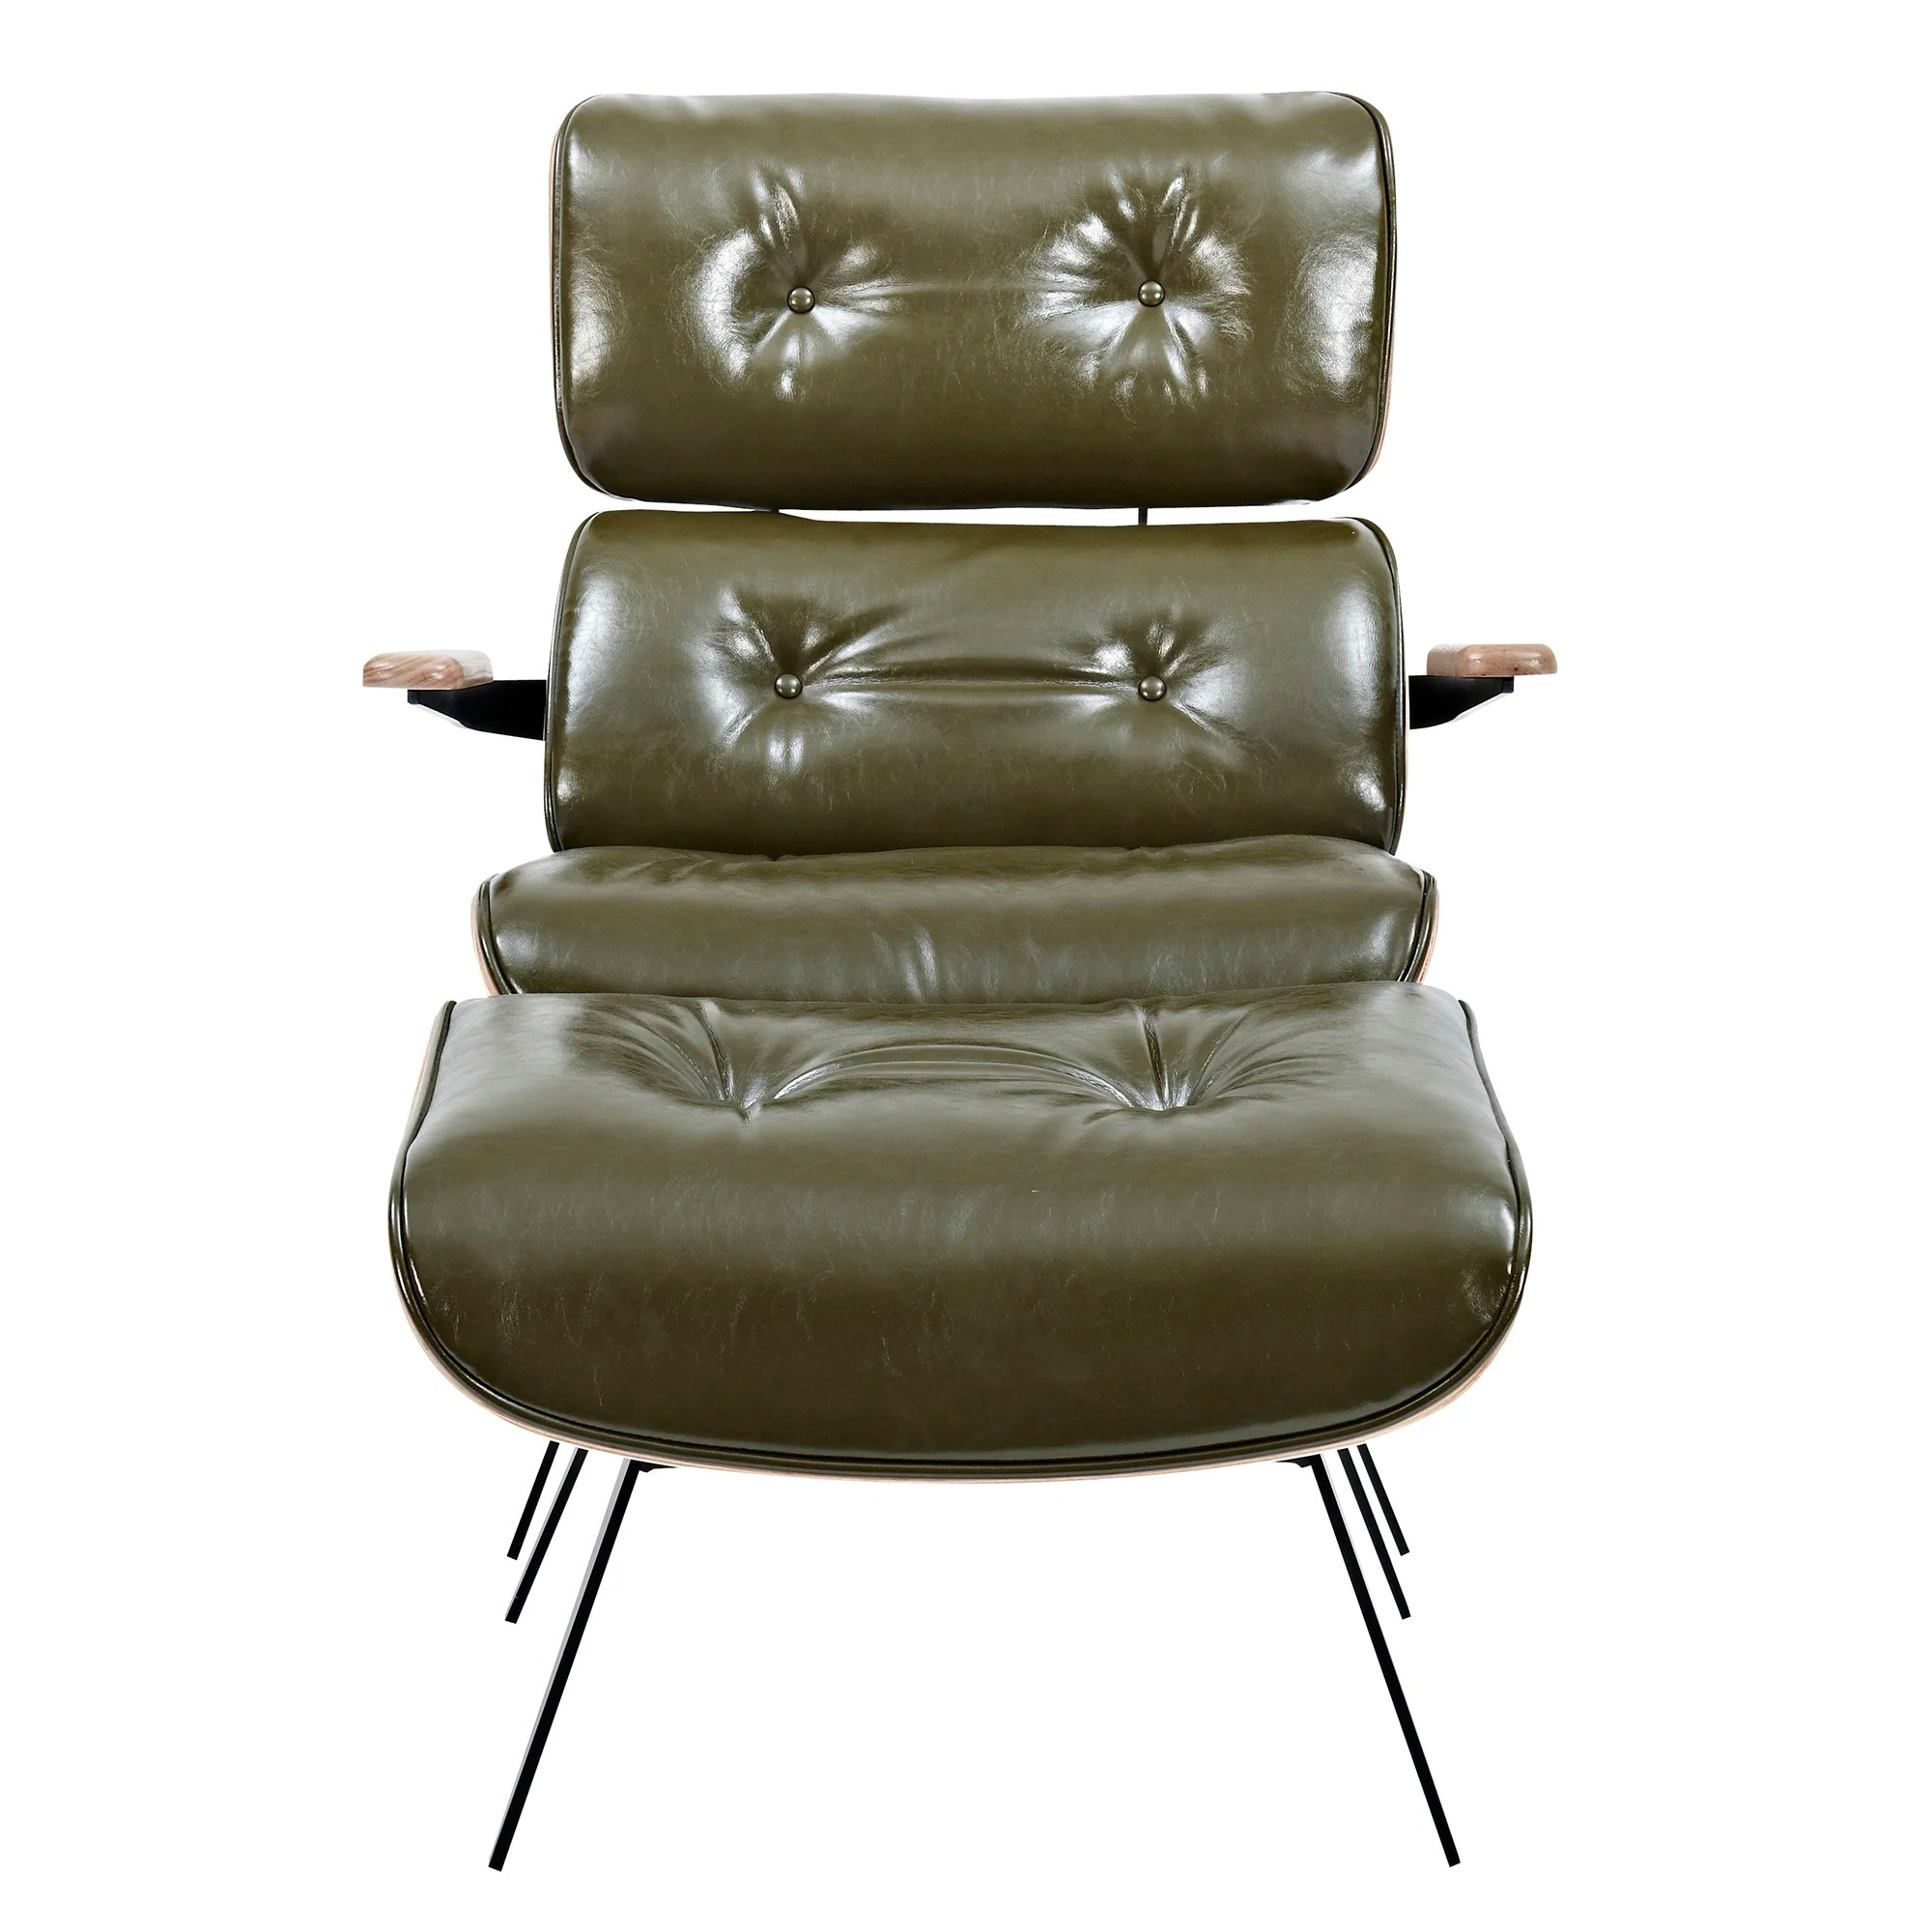 Lounge Chair With Ottoman Nyekoncept Eama Lounge Chair With Ottoman Wayfair Ca